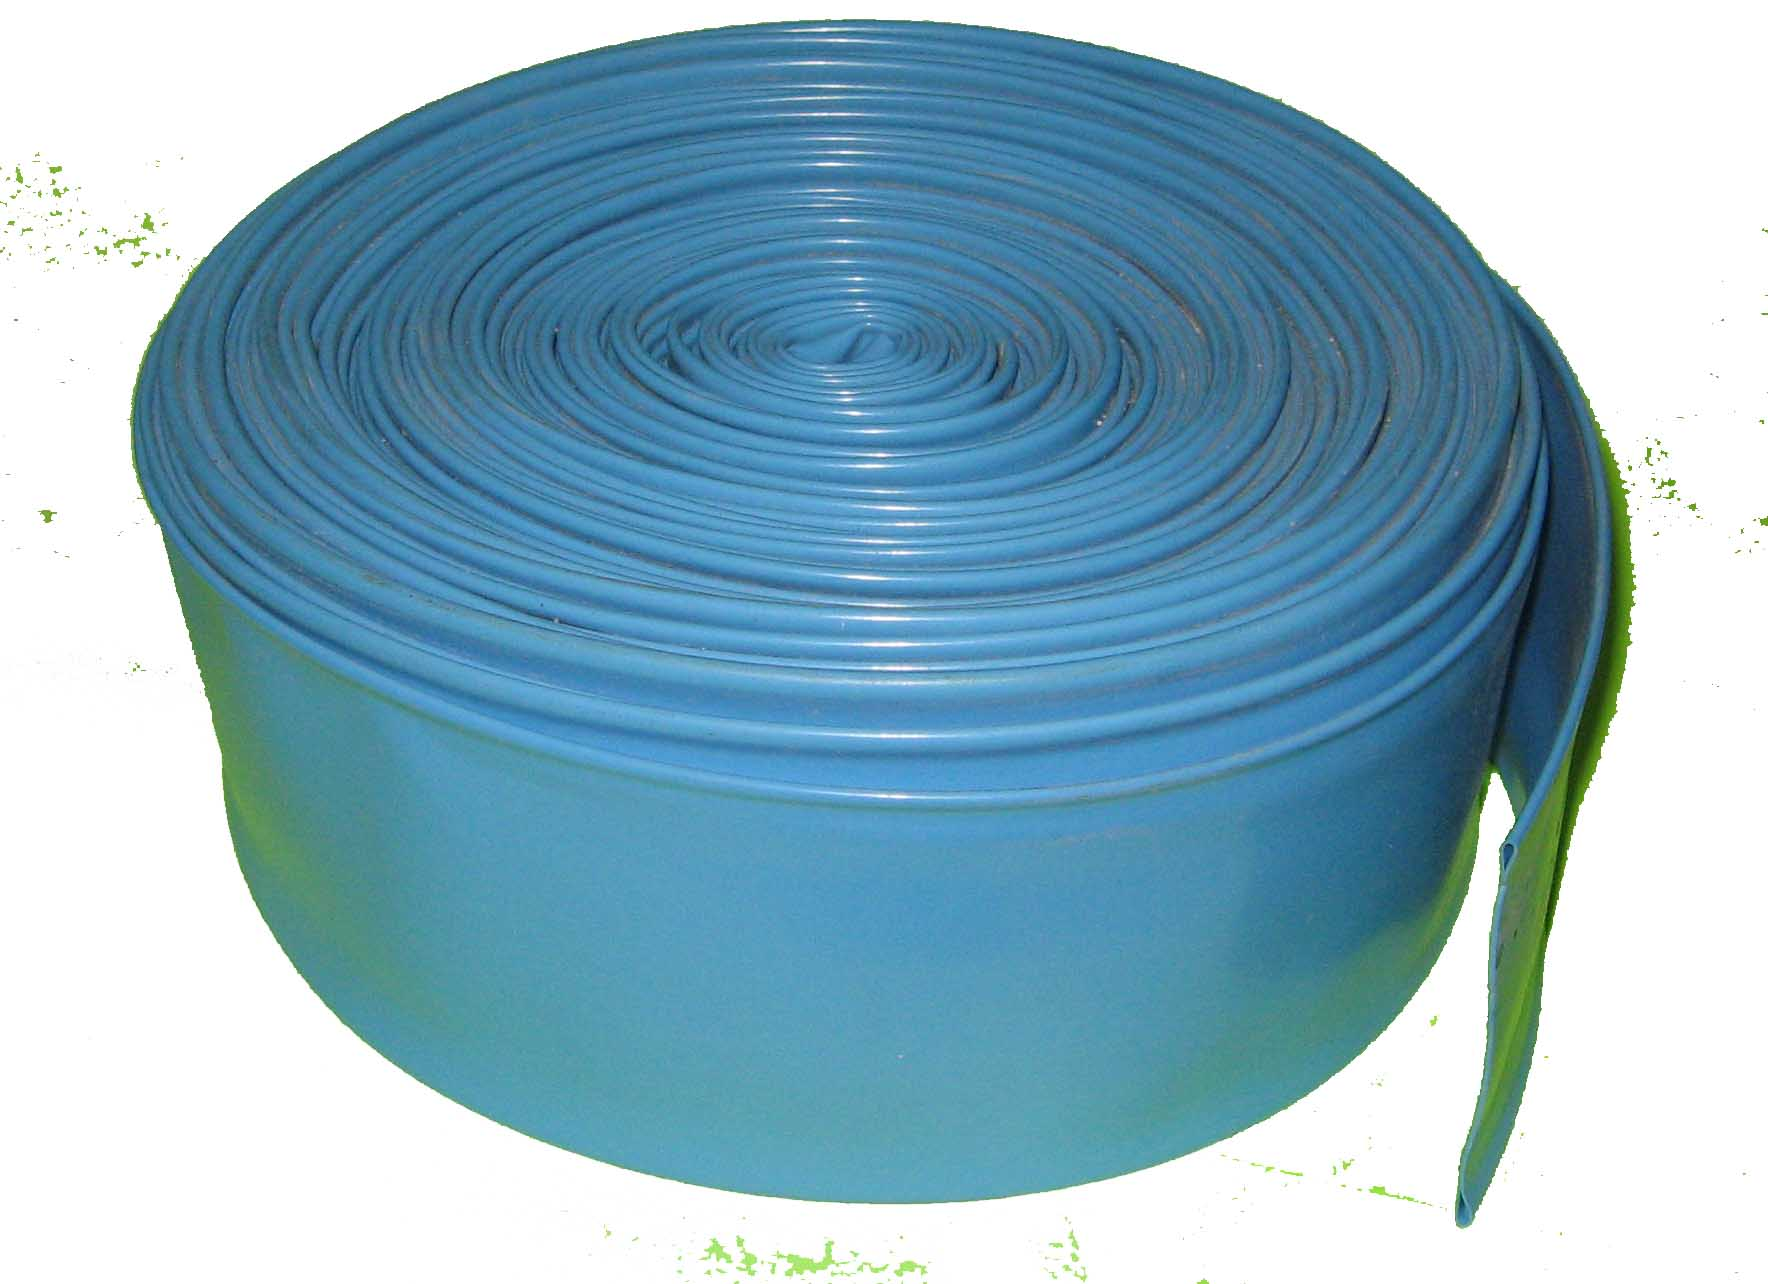 Swimming Pool Supply Company Pool Accessories 1 1 2 X 25 39 Discharge Hose